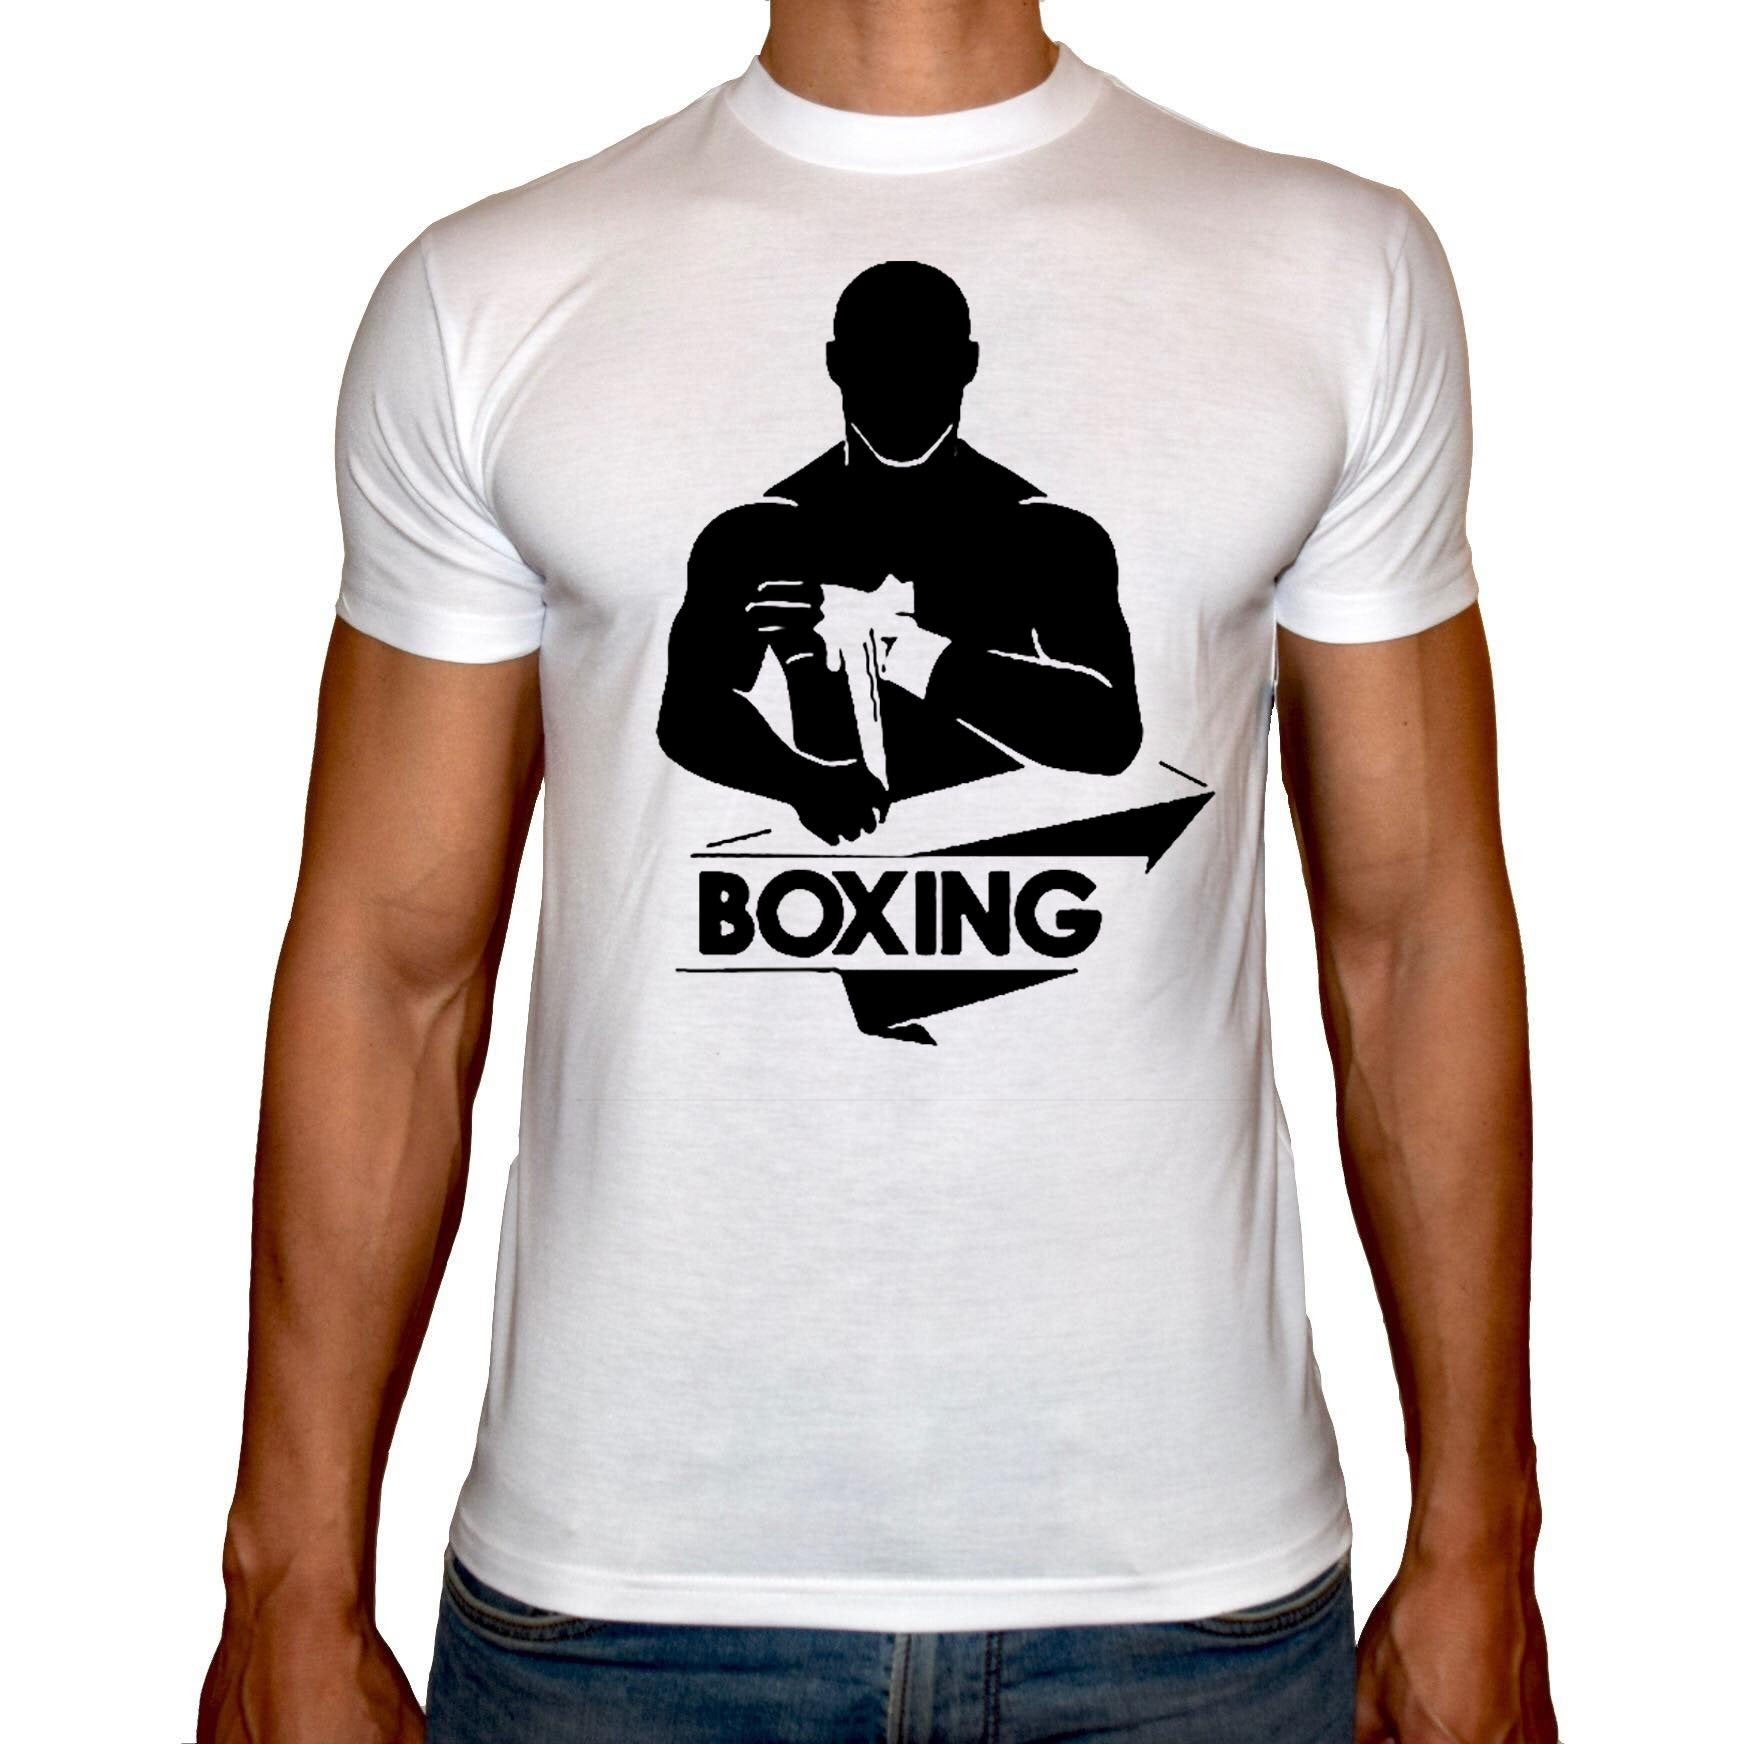 Phoenix WHITE Round Neck Printed T-Shirt Men (Boxing)